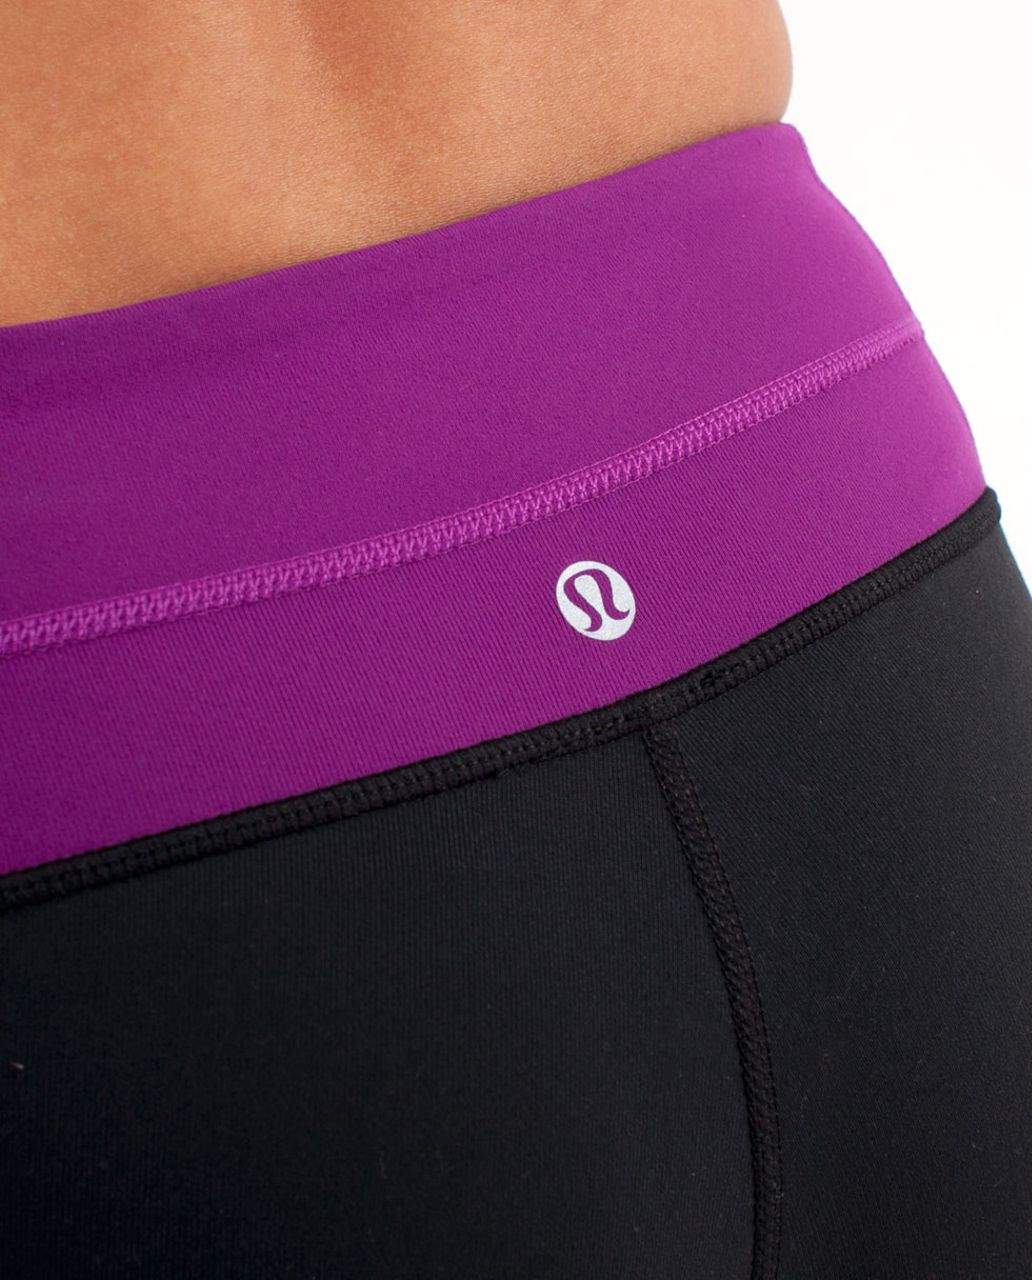 Lululemon Groove Pant (Regular) - Black /  Potion Purple